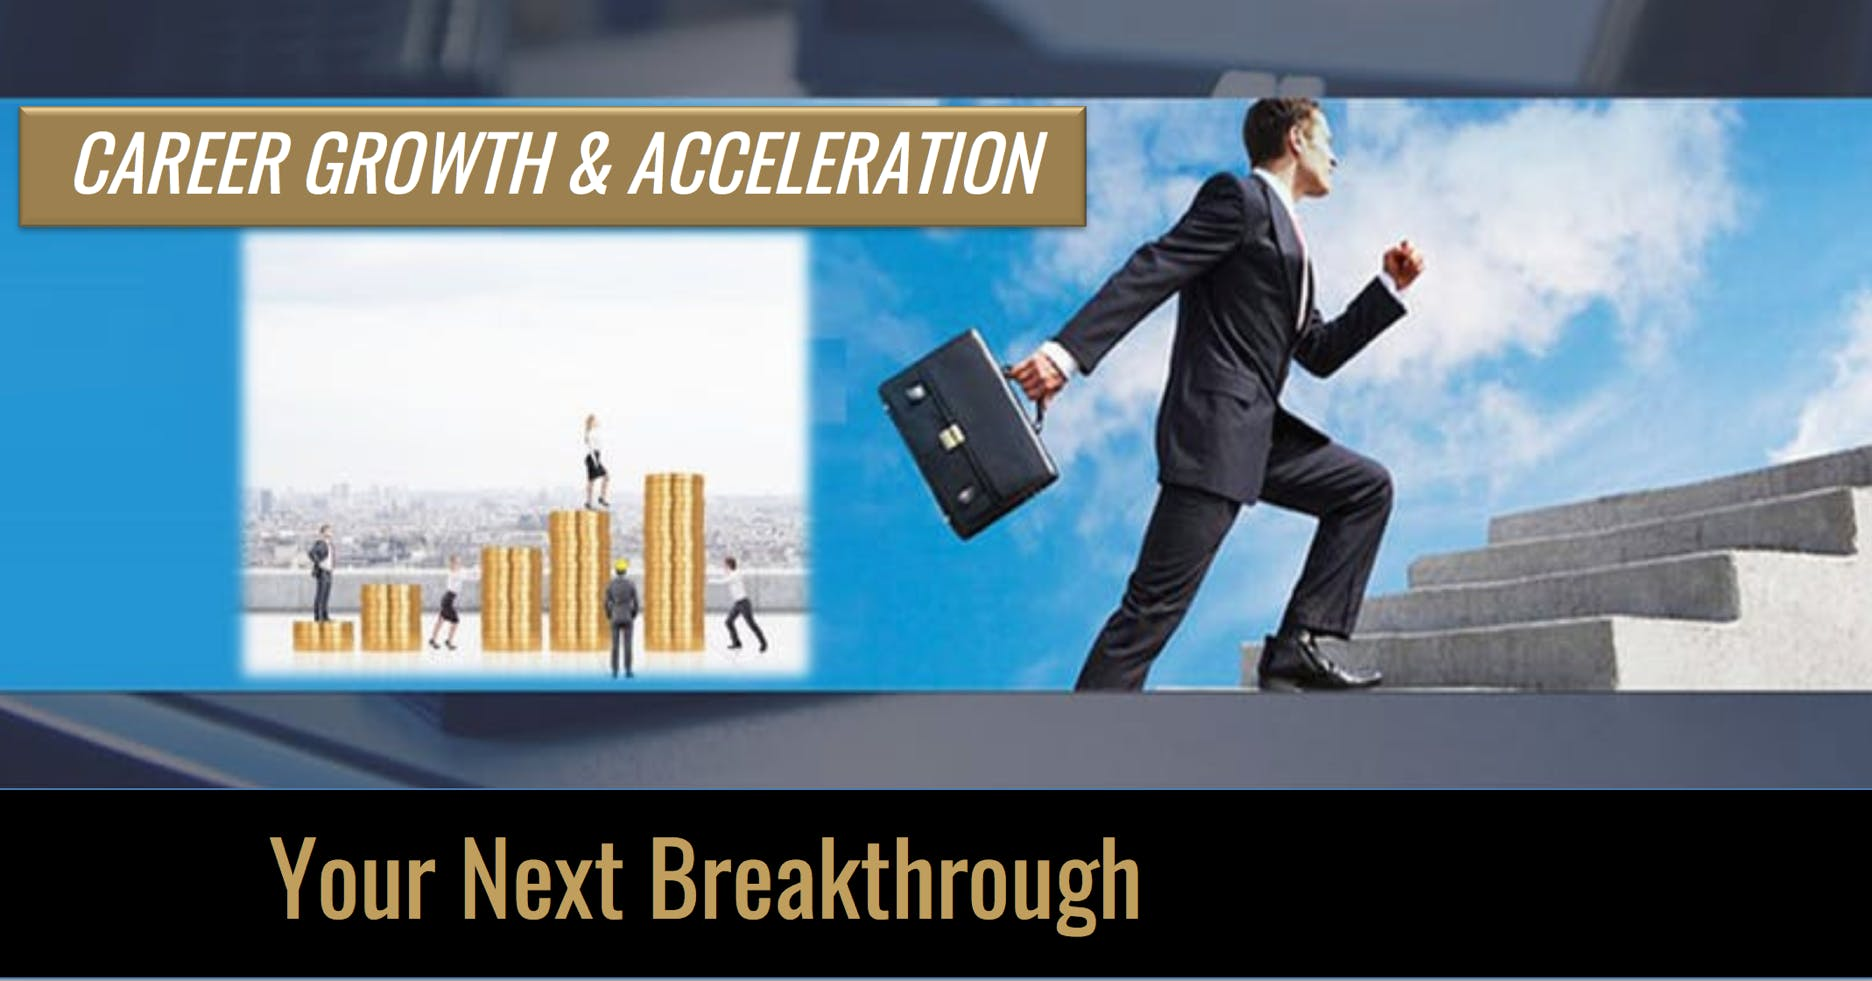 CAREER GROWTH & ACCELERATION Your Next Breakthrough